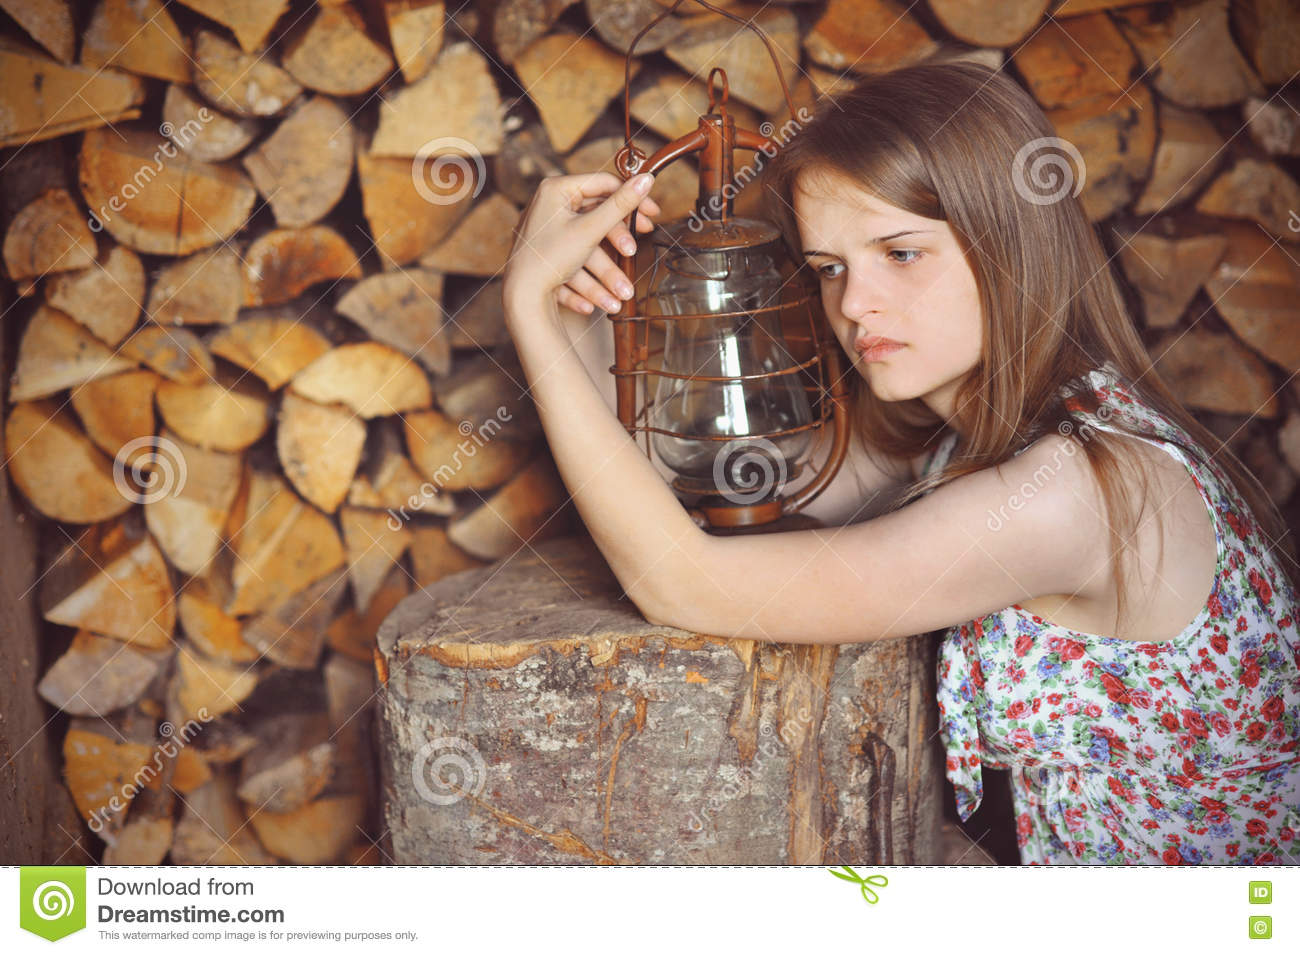 Romantic Sad Girl With A Gas Lamp Stock Photo - Image of long, house ... for sad girl with lamp  239wja